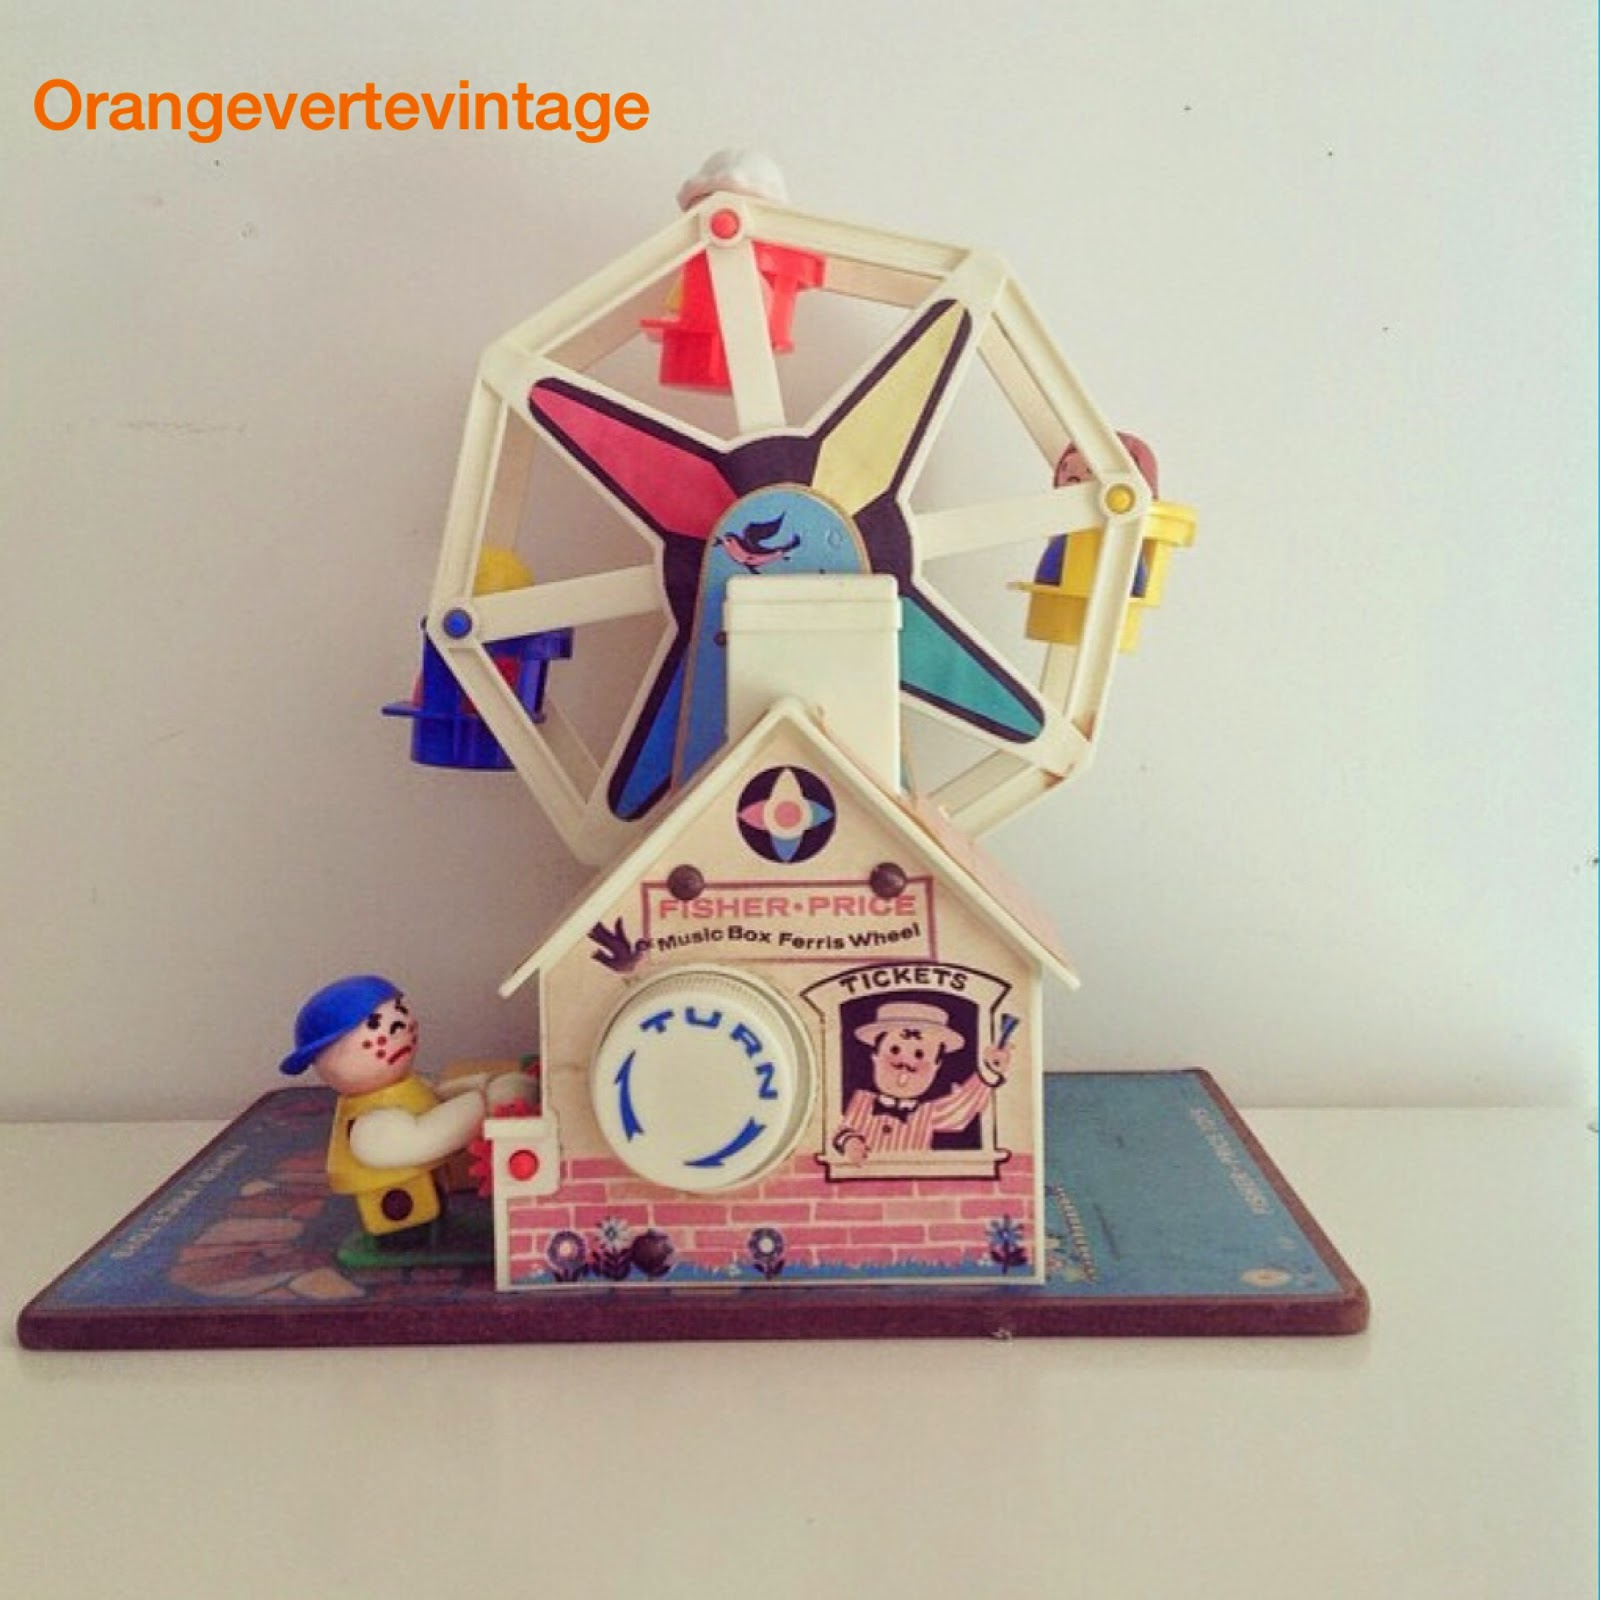 orange vertevintage